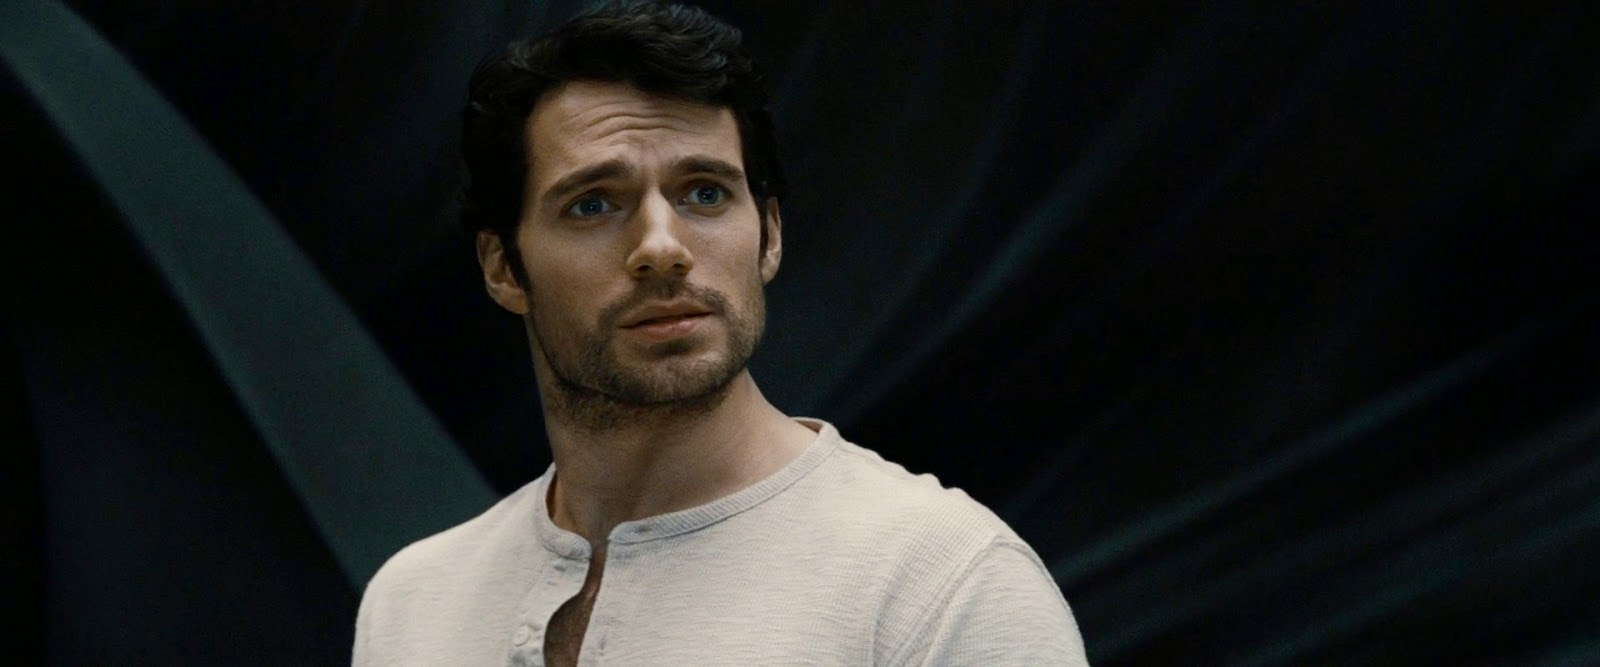 Man Of Steel (2013) S4 s Man Of Steel (2013)